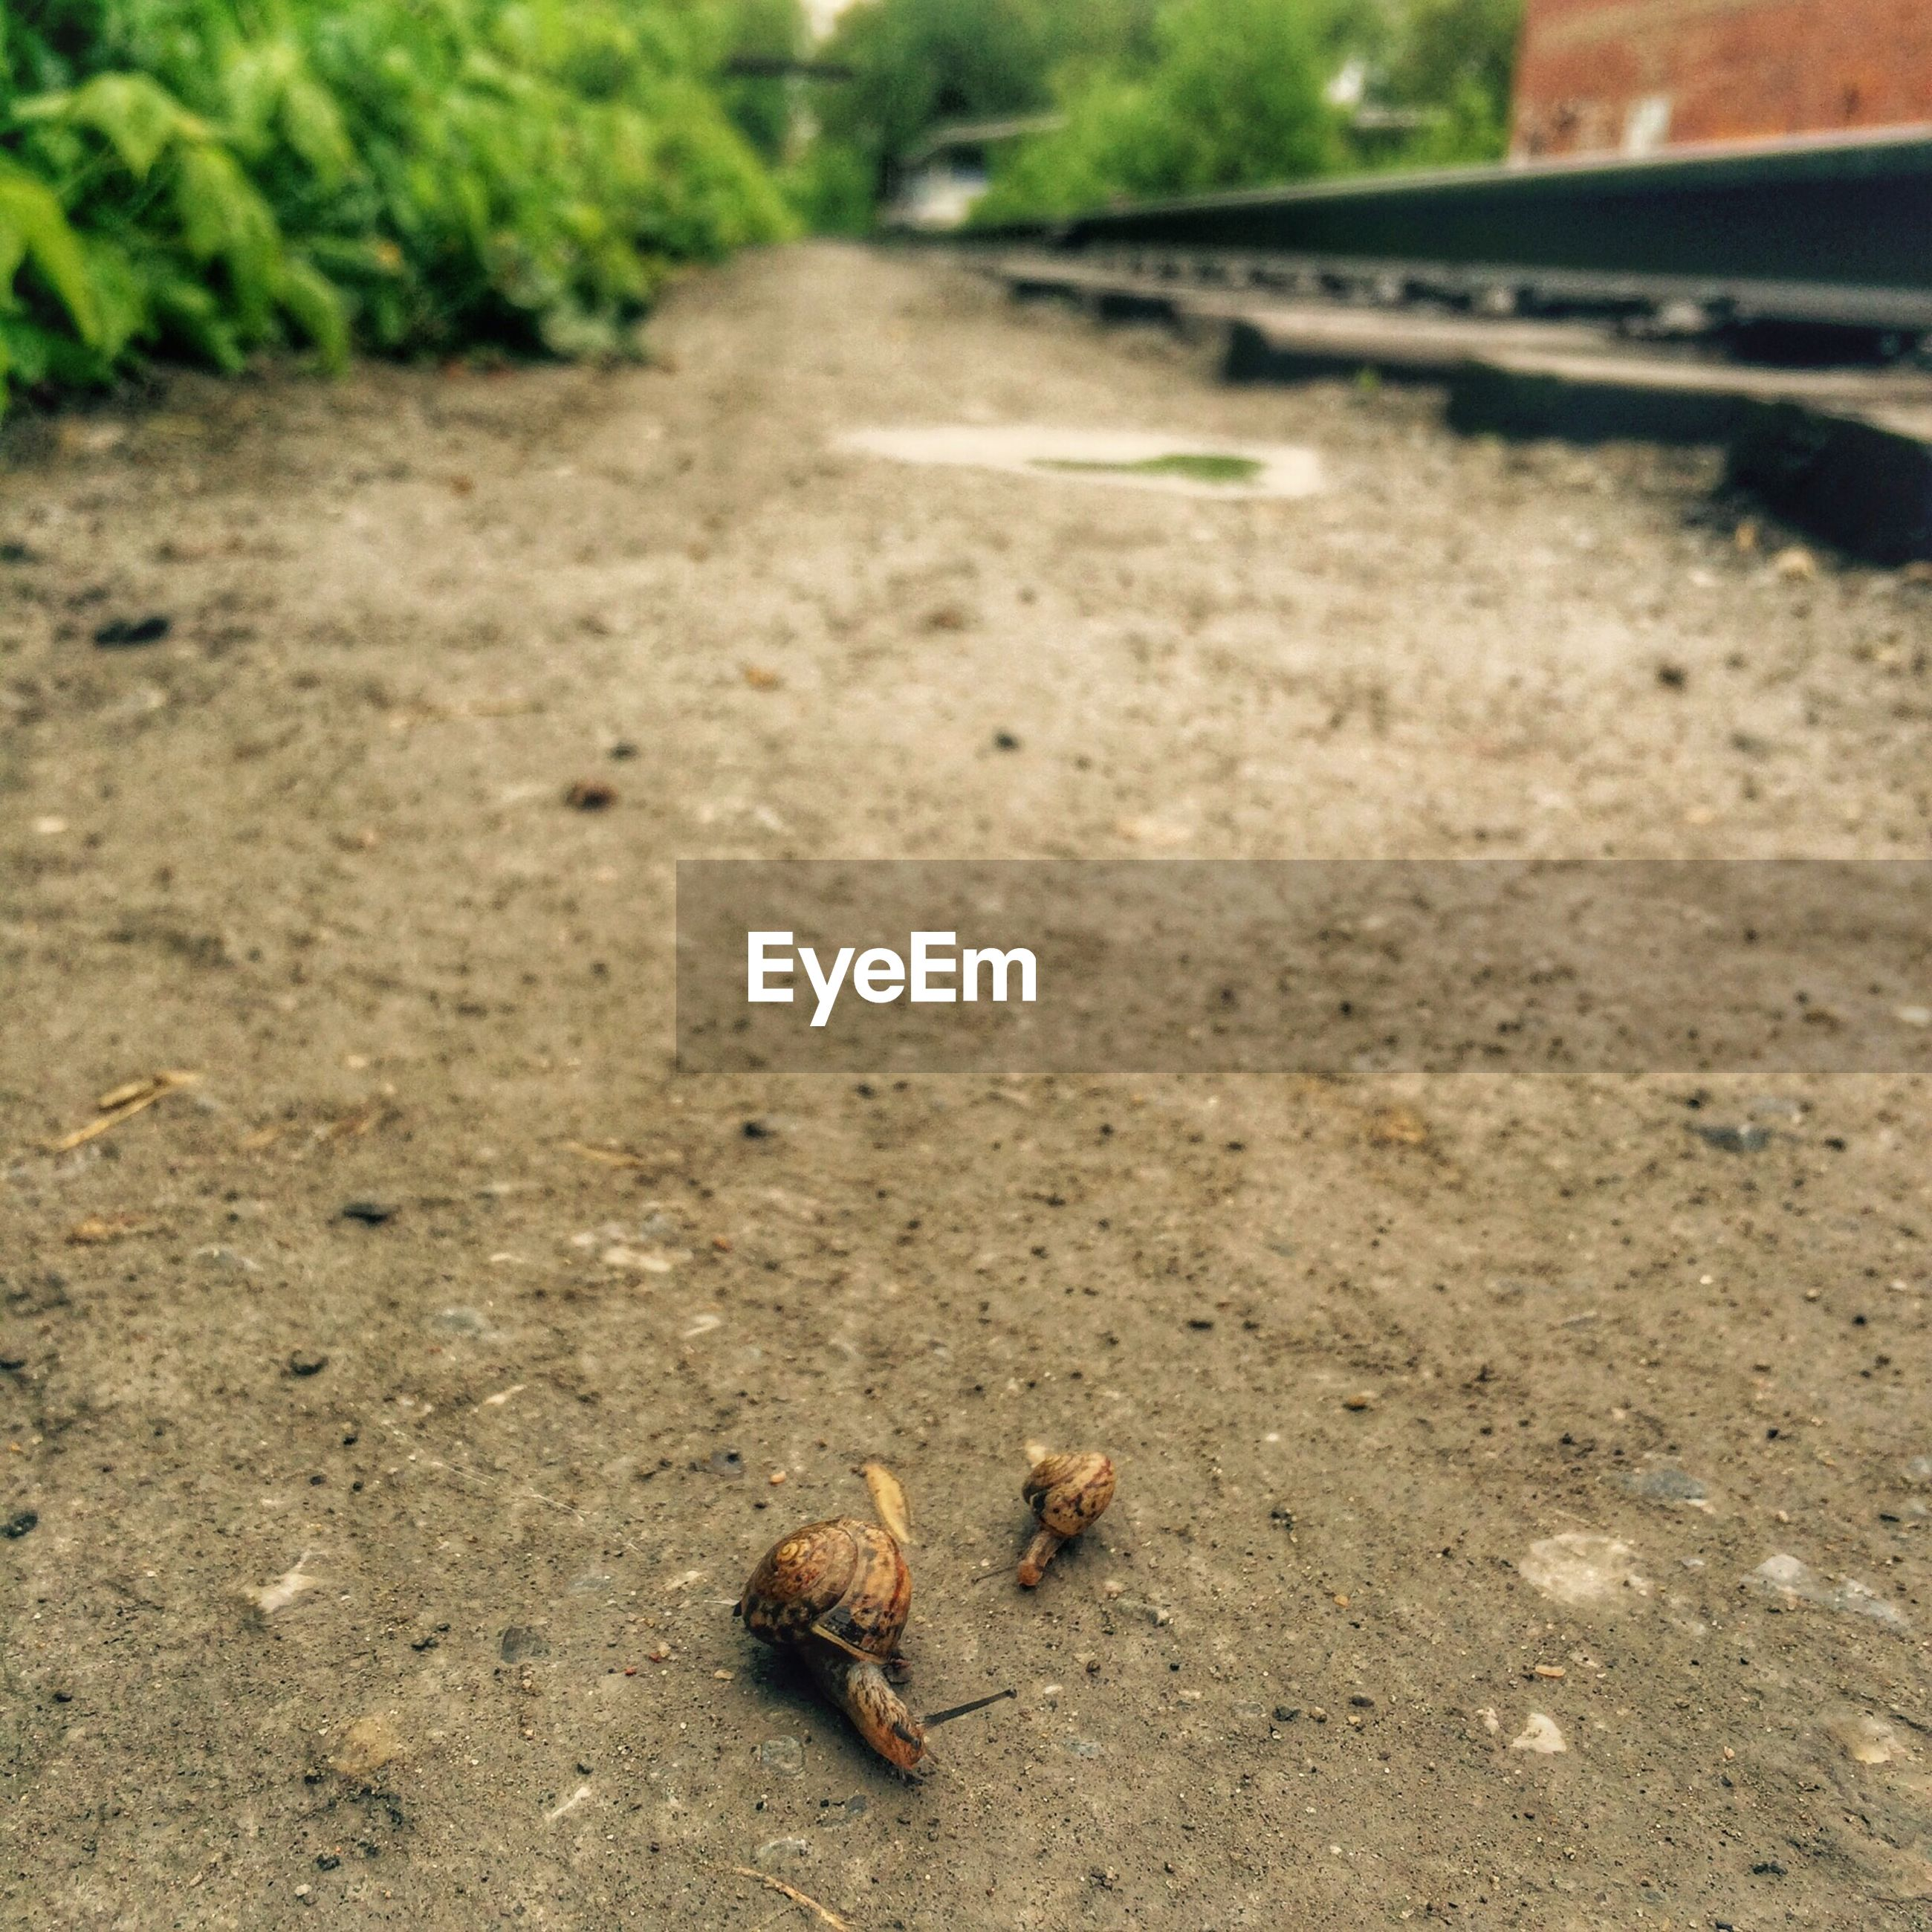 animal themes, one animal, animals in the wild, wildlife, street, high angle view, day, road, outdoors, selective focus, nature, zoology, asphalt, surface level, sunlight, close-up, insect, no people, focus on foreground, ground